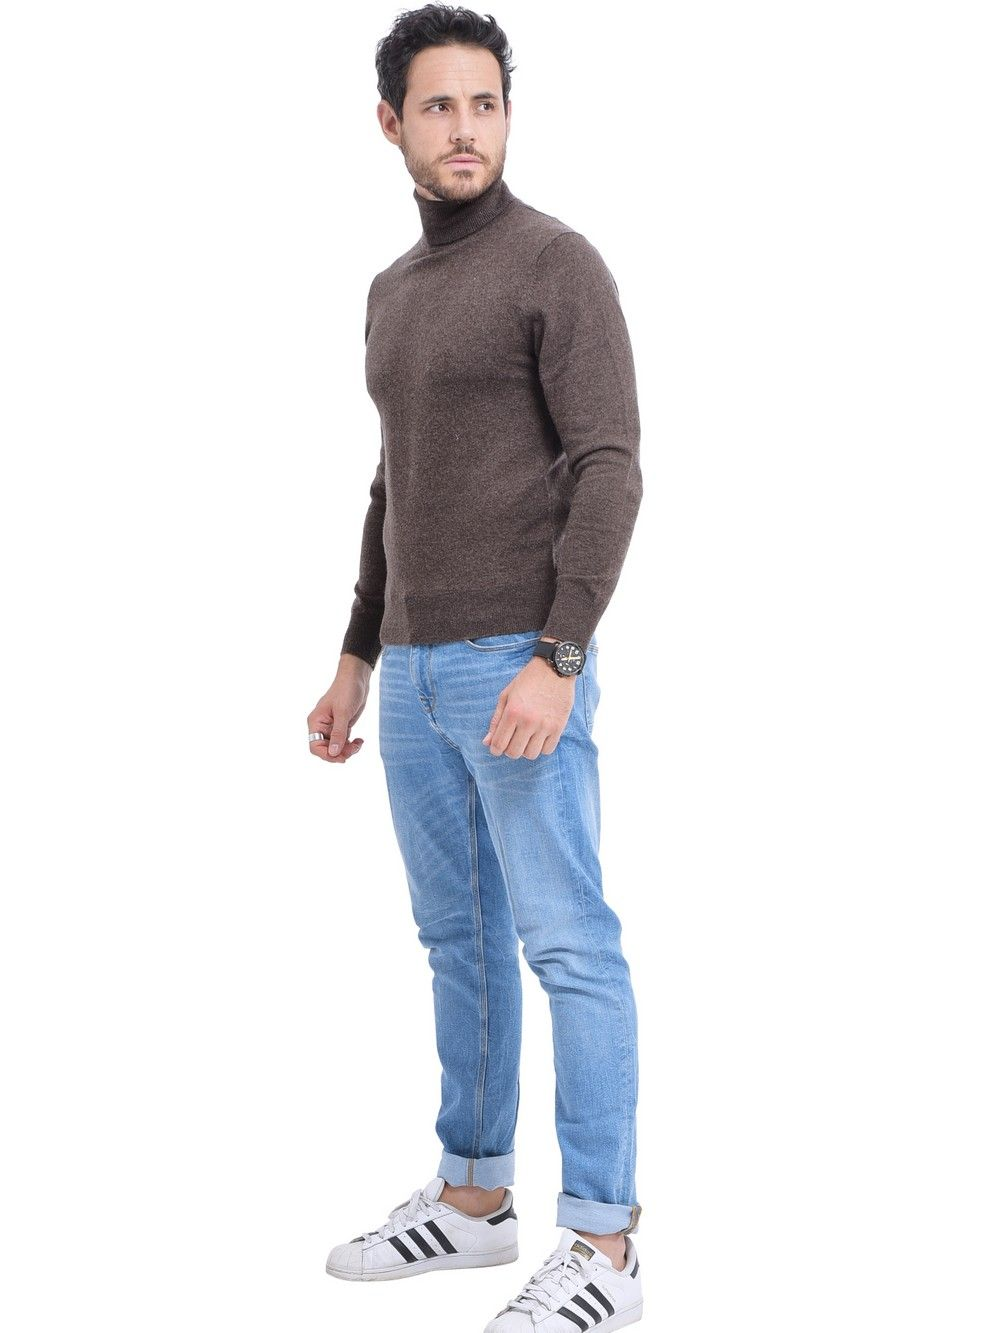 C&JO Turtleneck Sweater in Brown